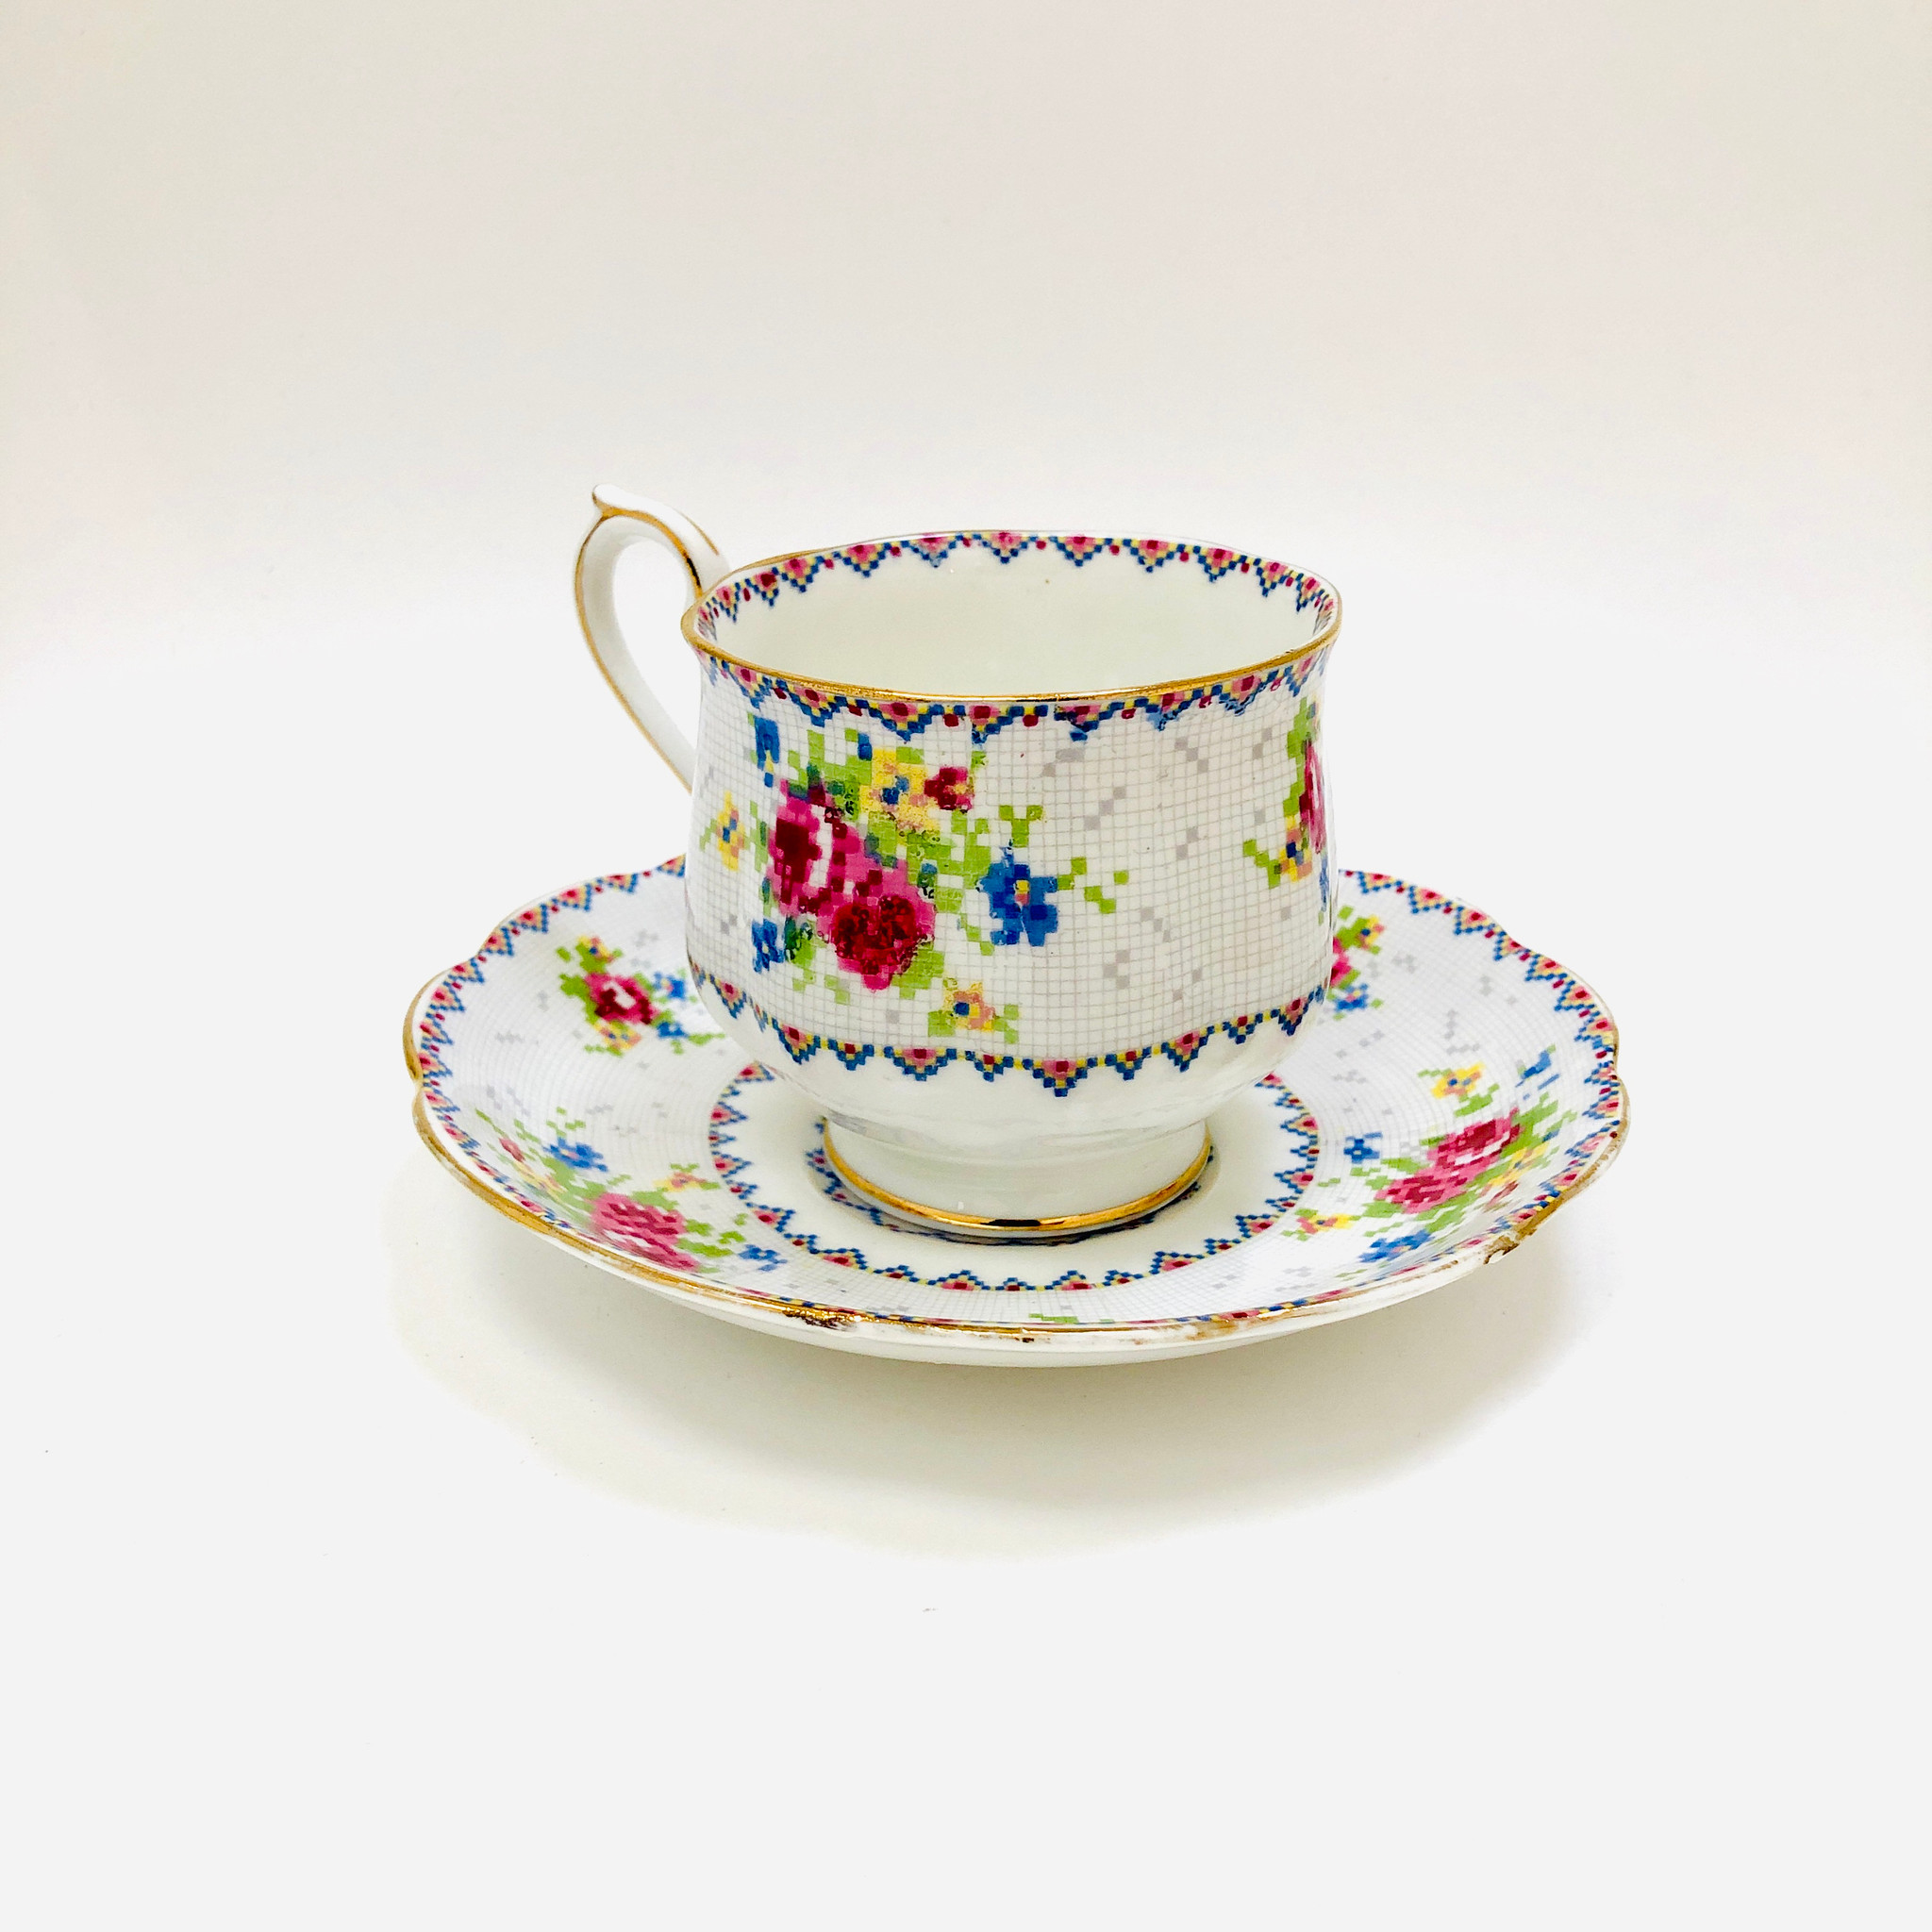 Royal Albert Petit Point Vintage Cup And Saucer Tea Cup Teacup Cup Saucer England Ibon Antiques